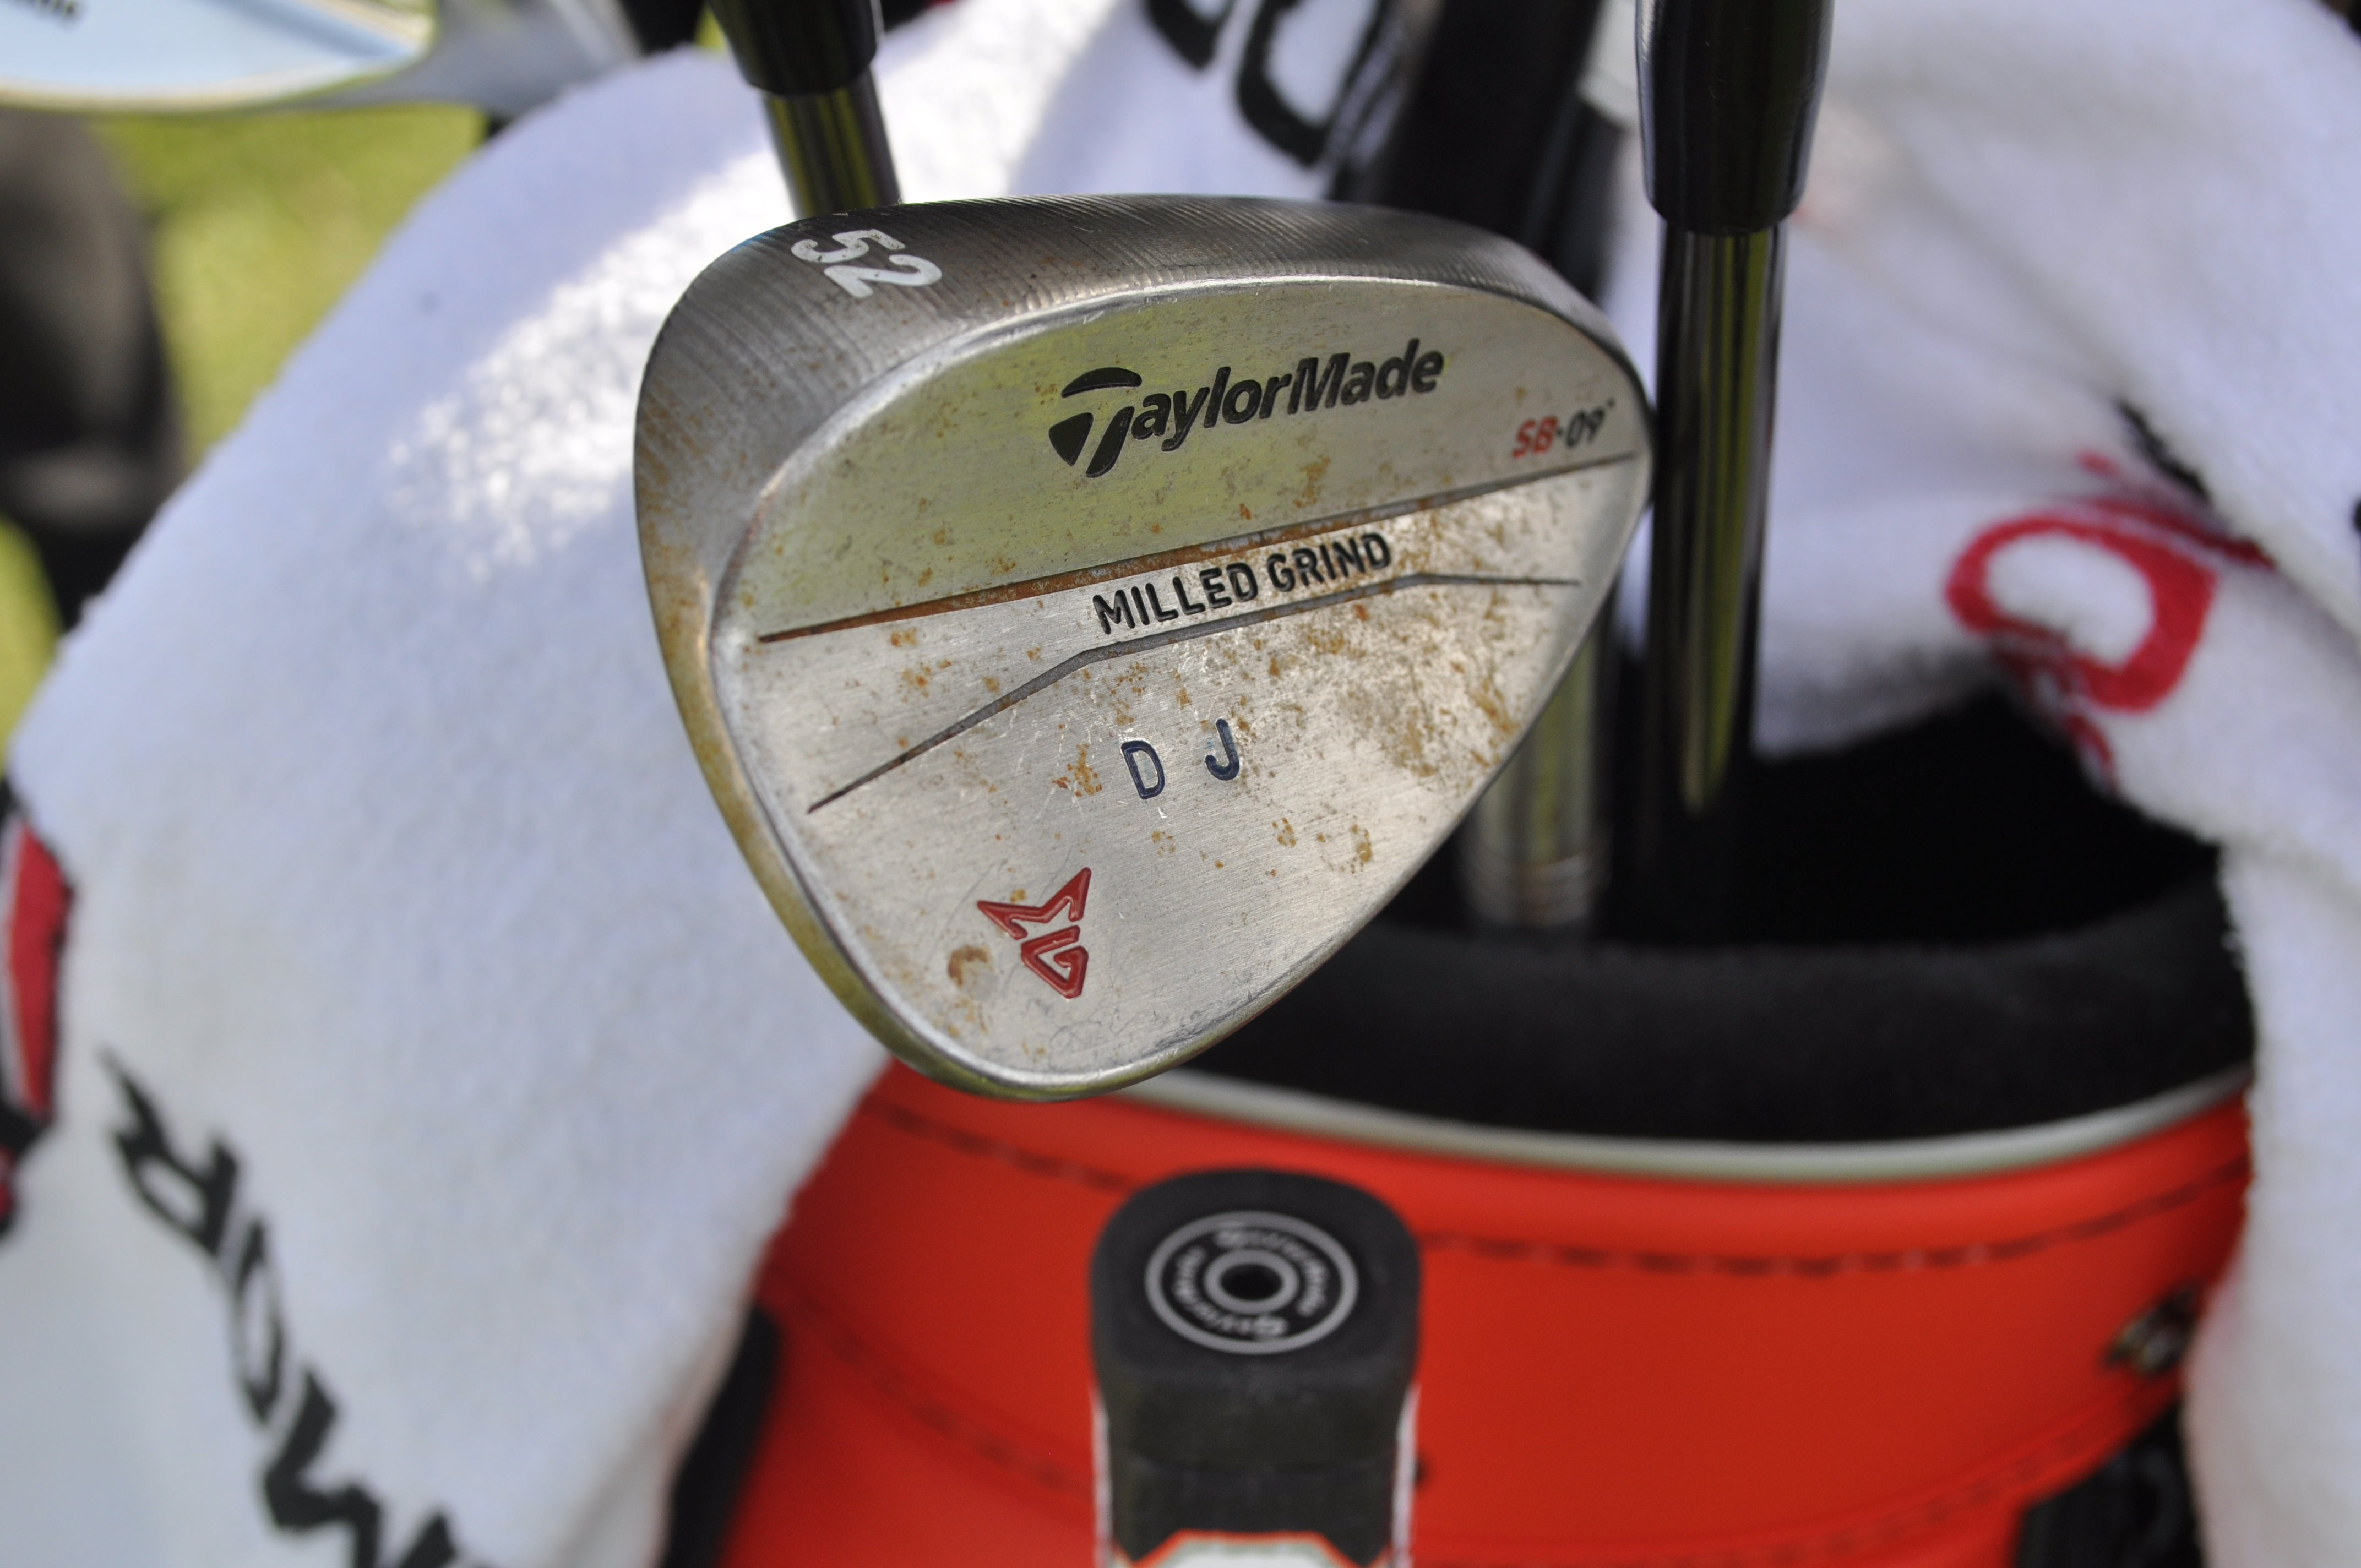 Dustin Johnson has his initials stamped on the head of his TaylorMade Milled Grind wedges.